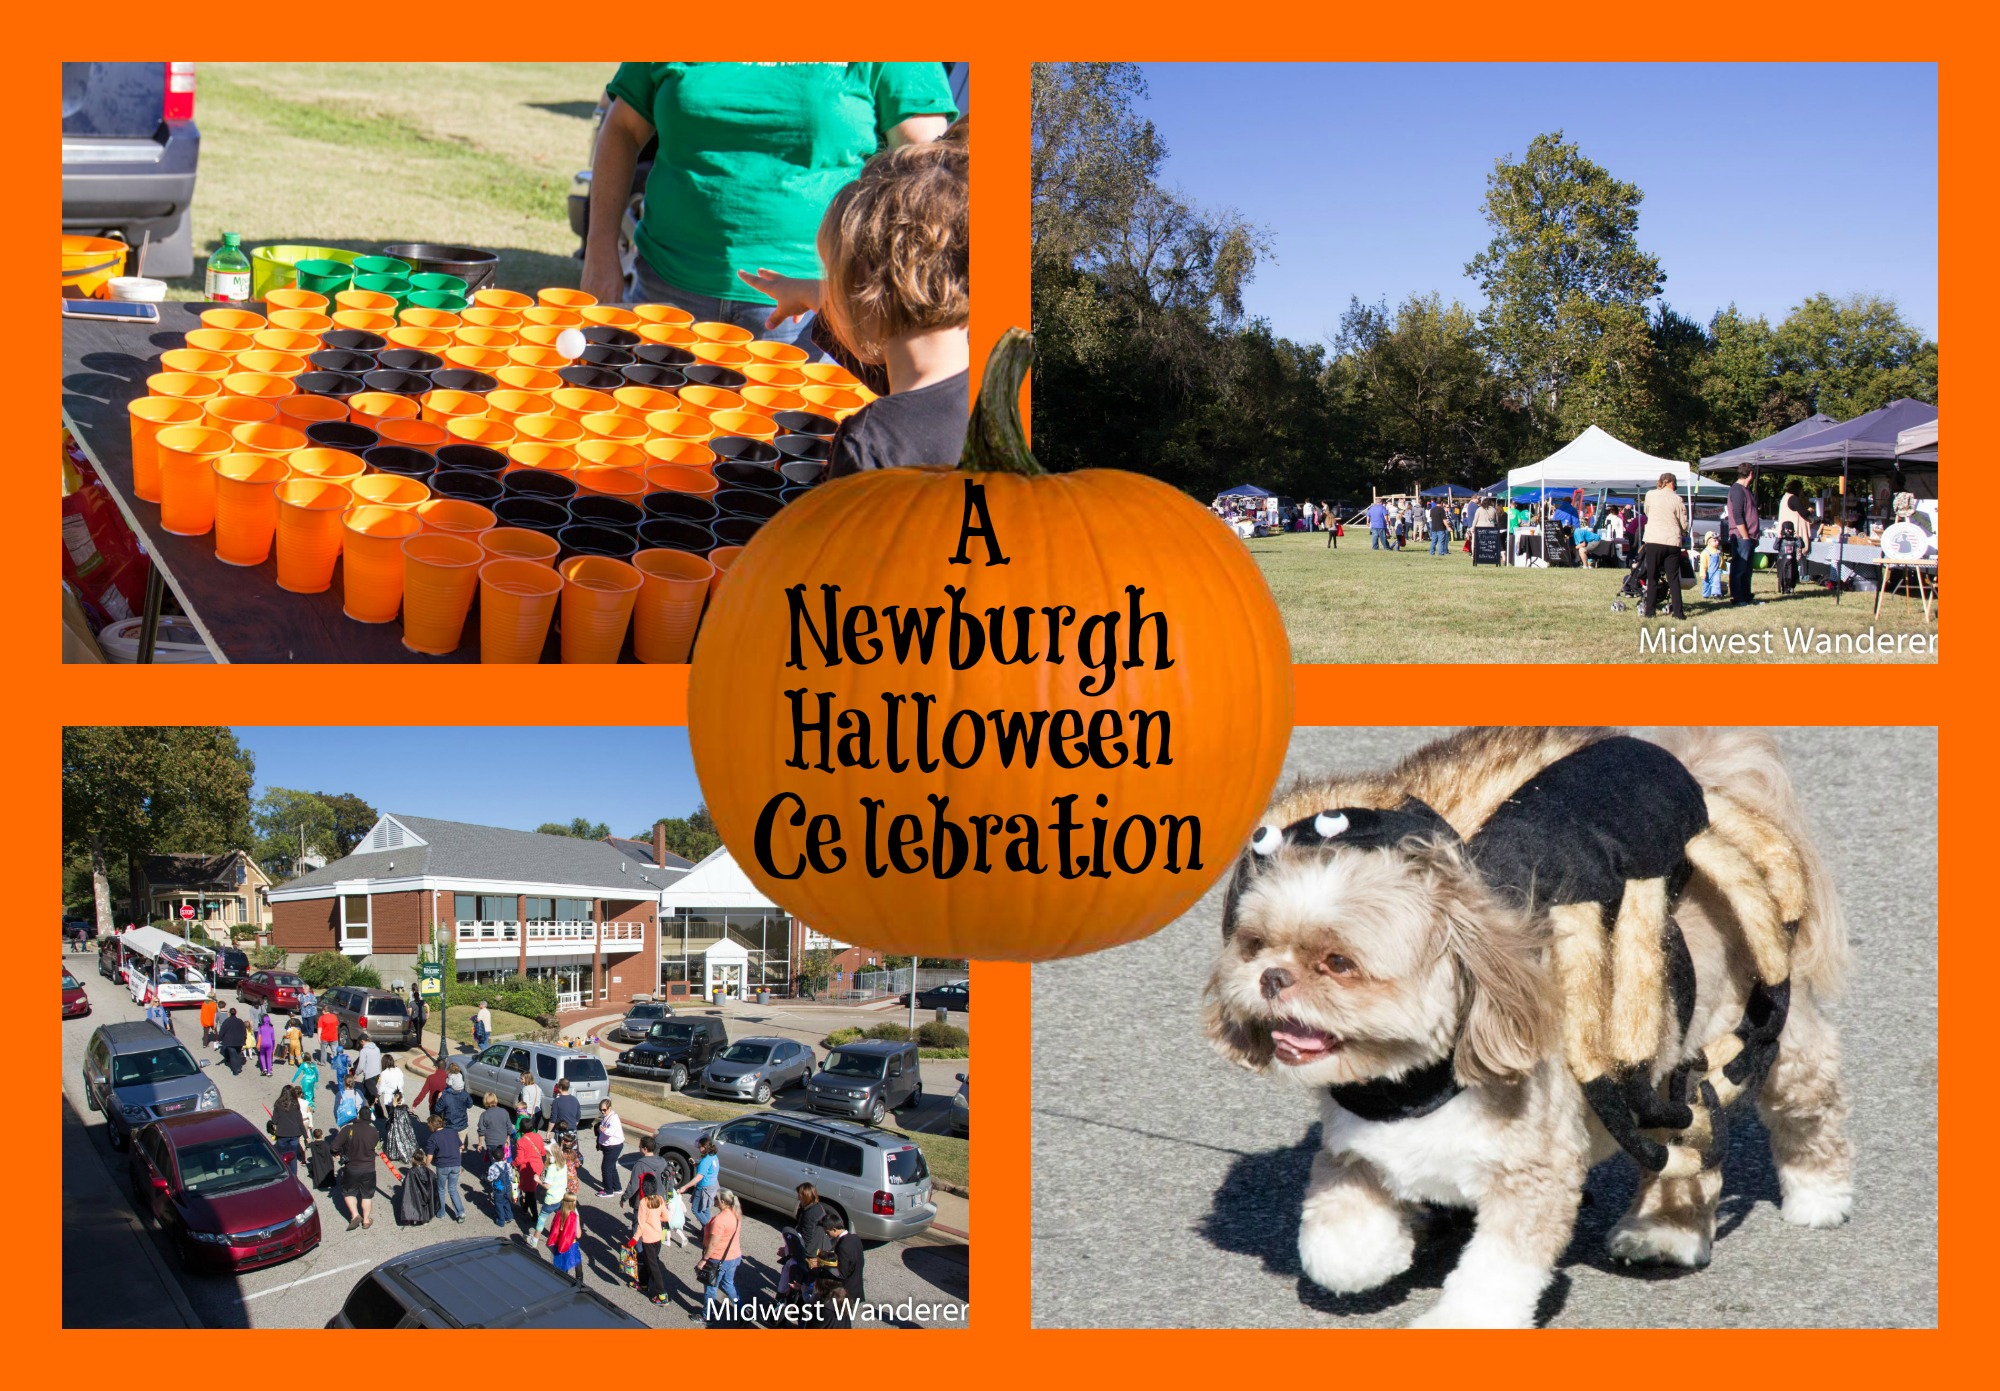 Newburgh Halloween Celebration